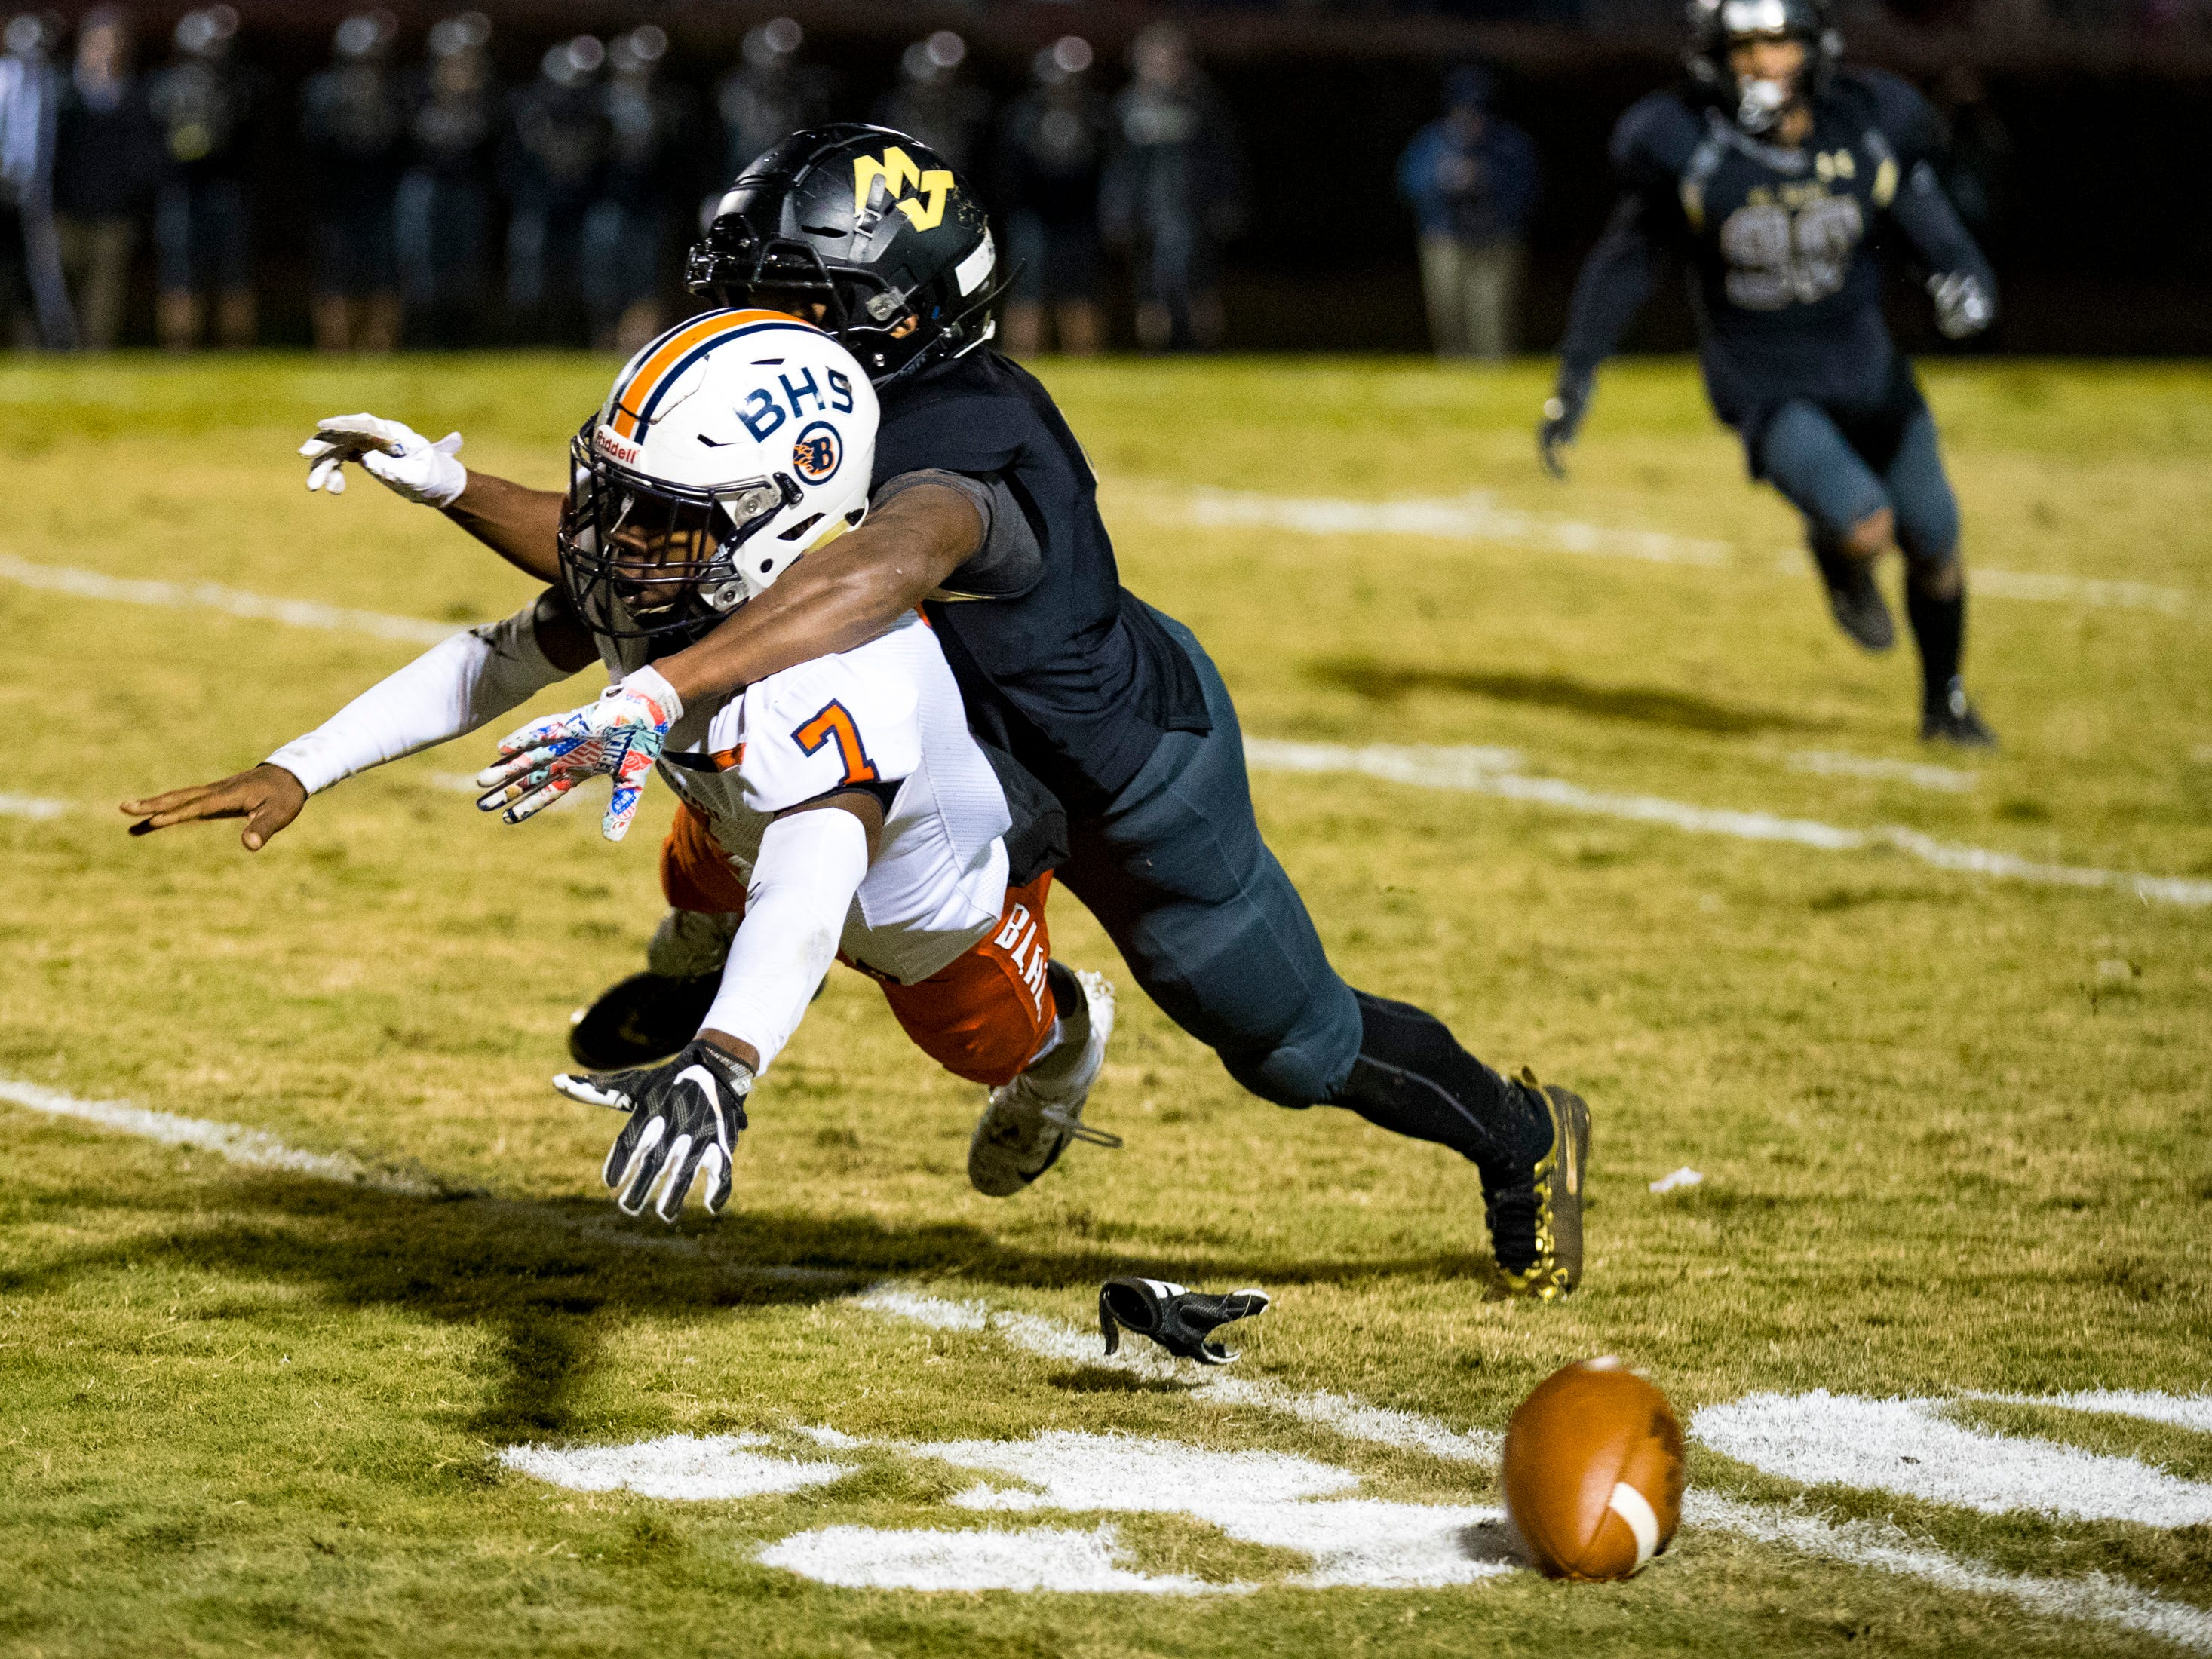 Blackman's Michaleous Elder (7) tries for a pass under tight coverage during Mt. Juliet's game against Blackman at Mt. Juliet High School in Mt. Juliet on Friday, Nov. 9, 2018.